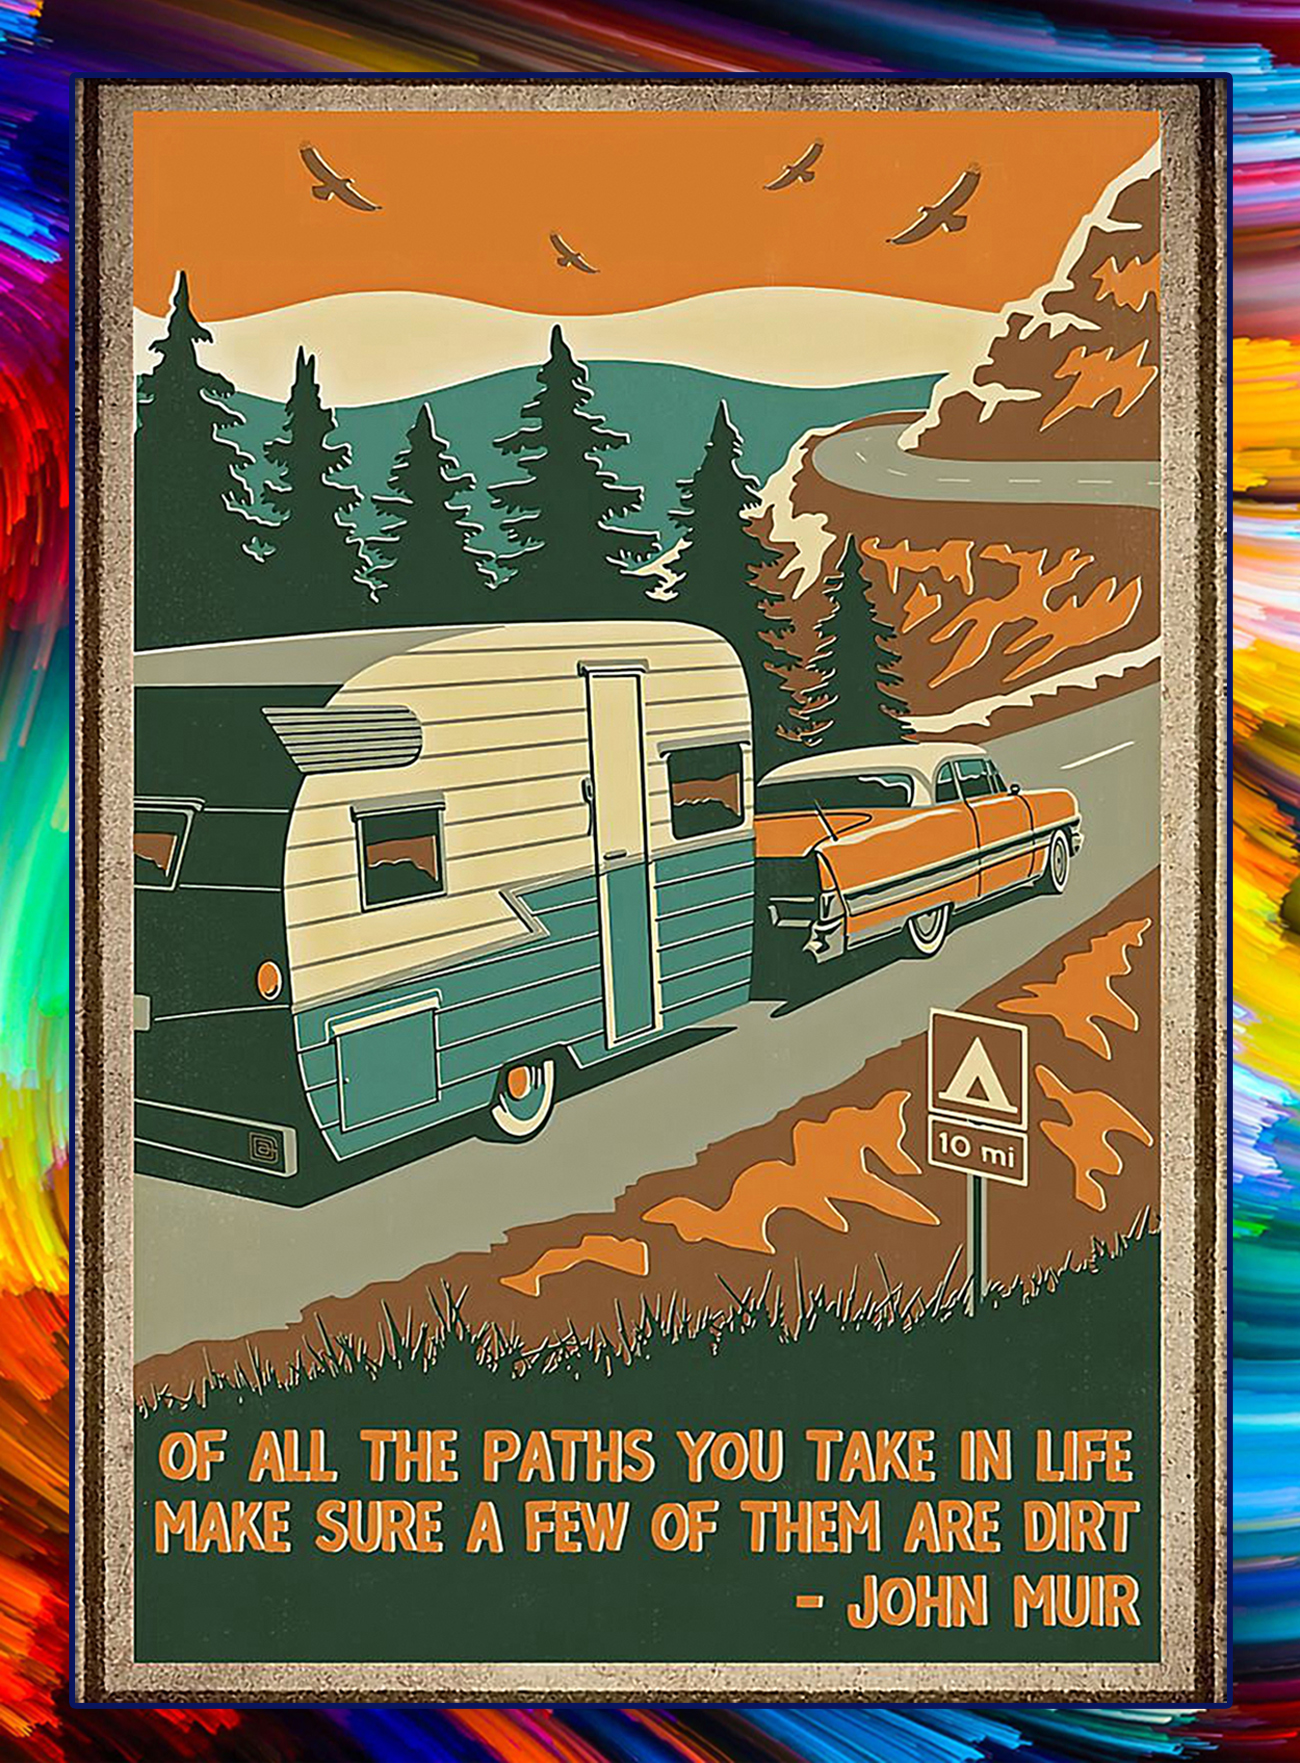 Of all the paths you take in life john muir poster - A1